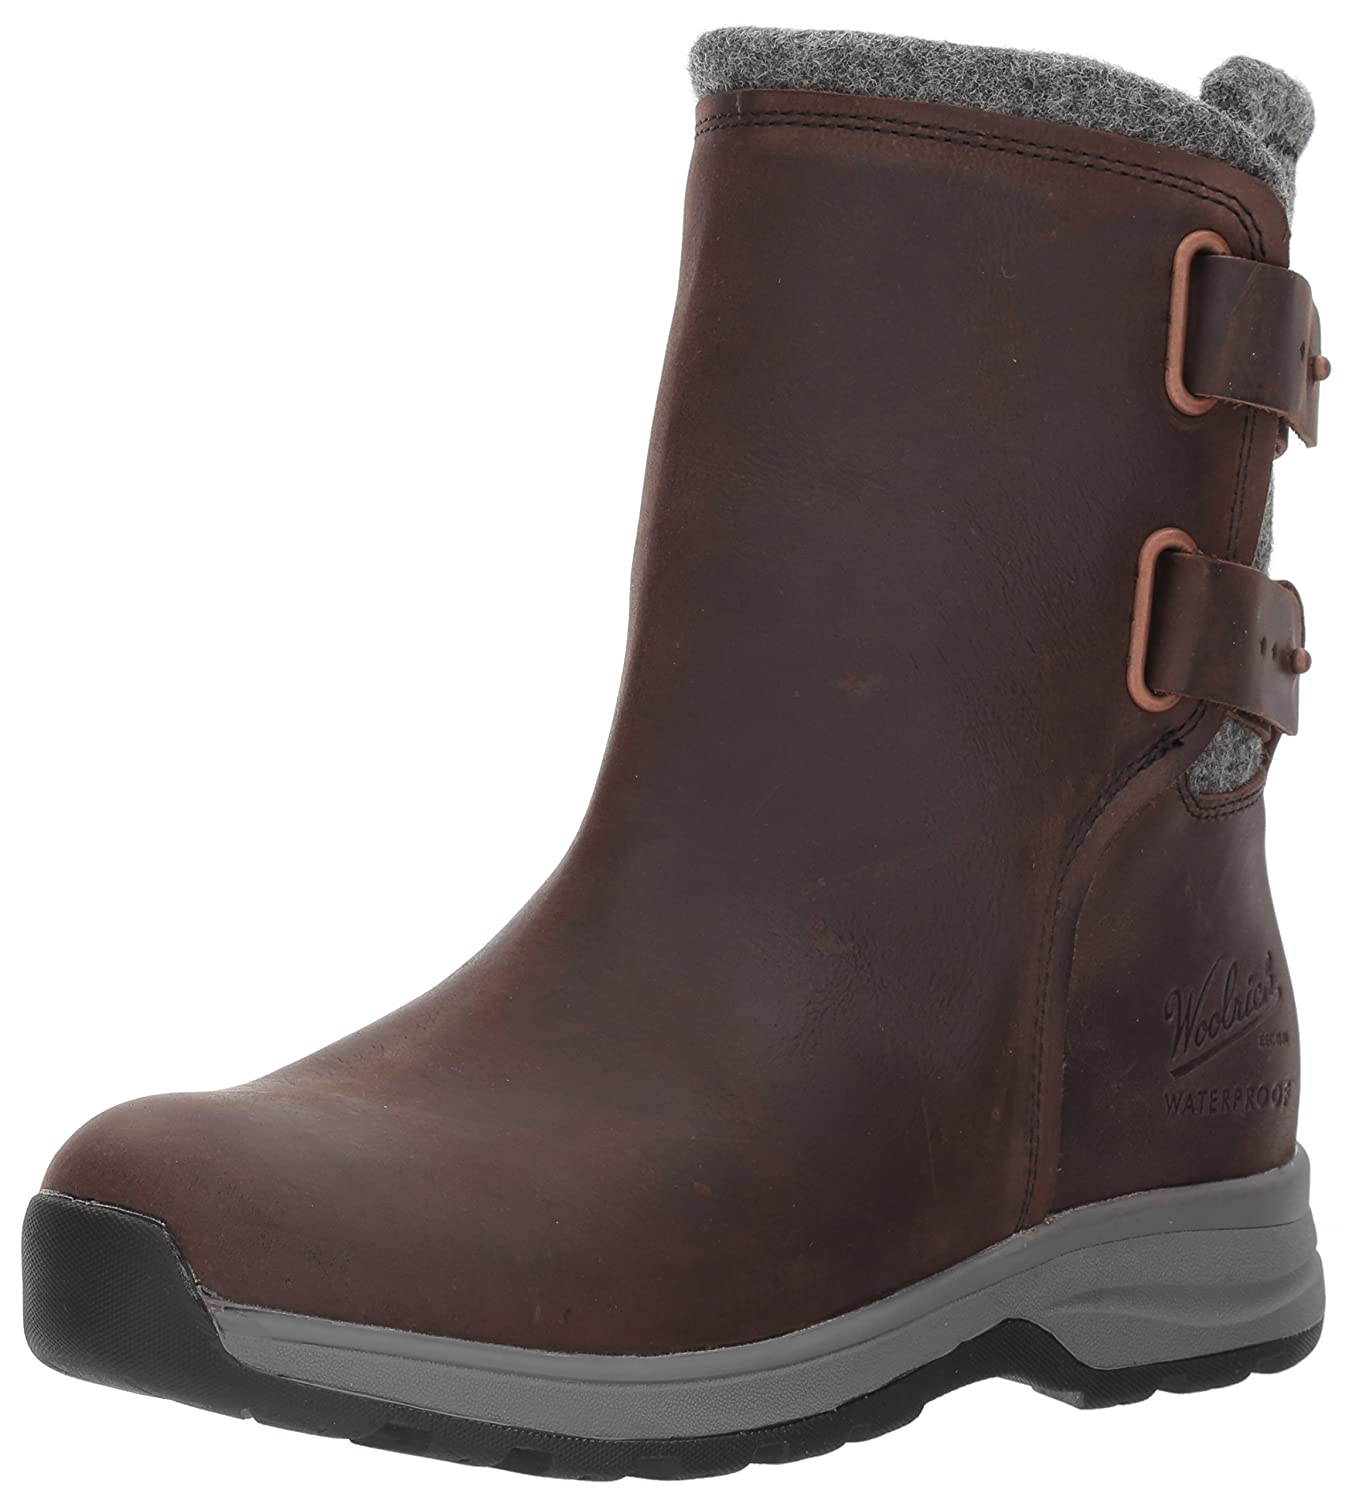 Woolrich Women's Koosa Winter Boot B01NAIKHUZ 6.5 B(M) US|Salt Marsh/Ash